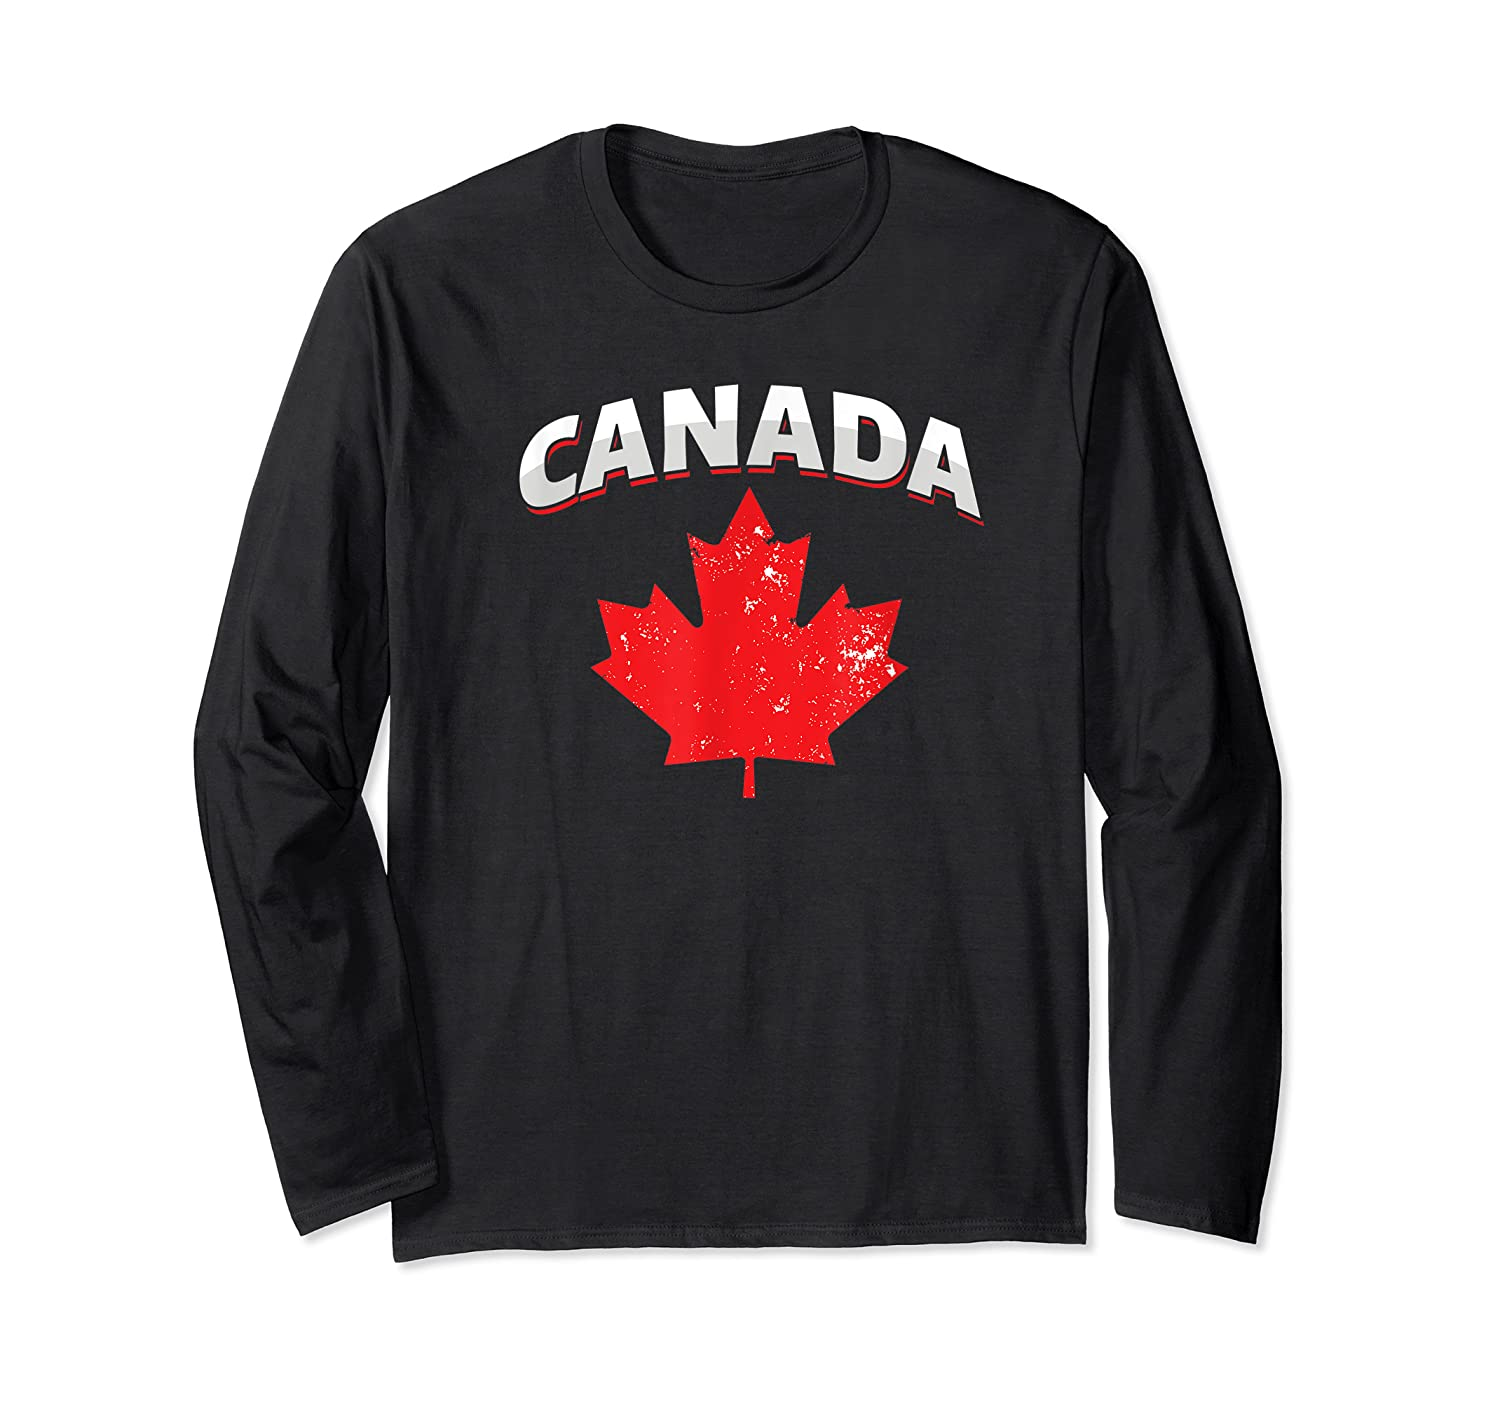 Toronto Vancouver Patriotic Canadian Canada Maple Leaf Shirts Long Sleeve T-shirt